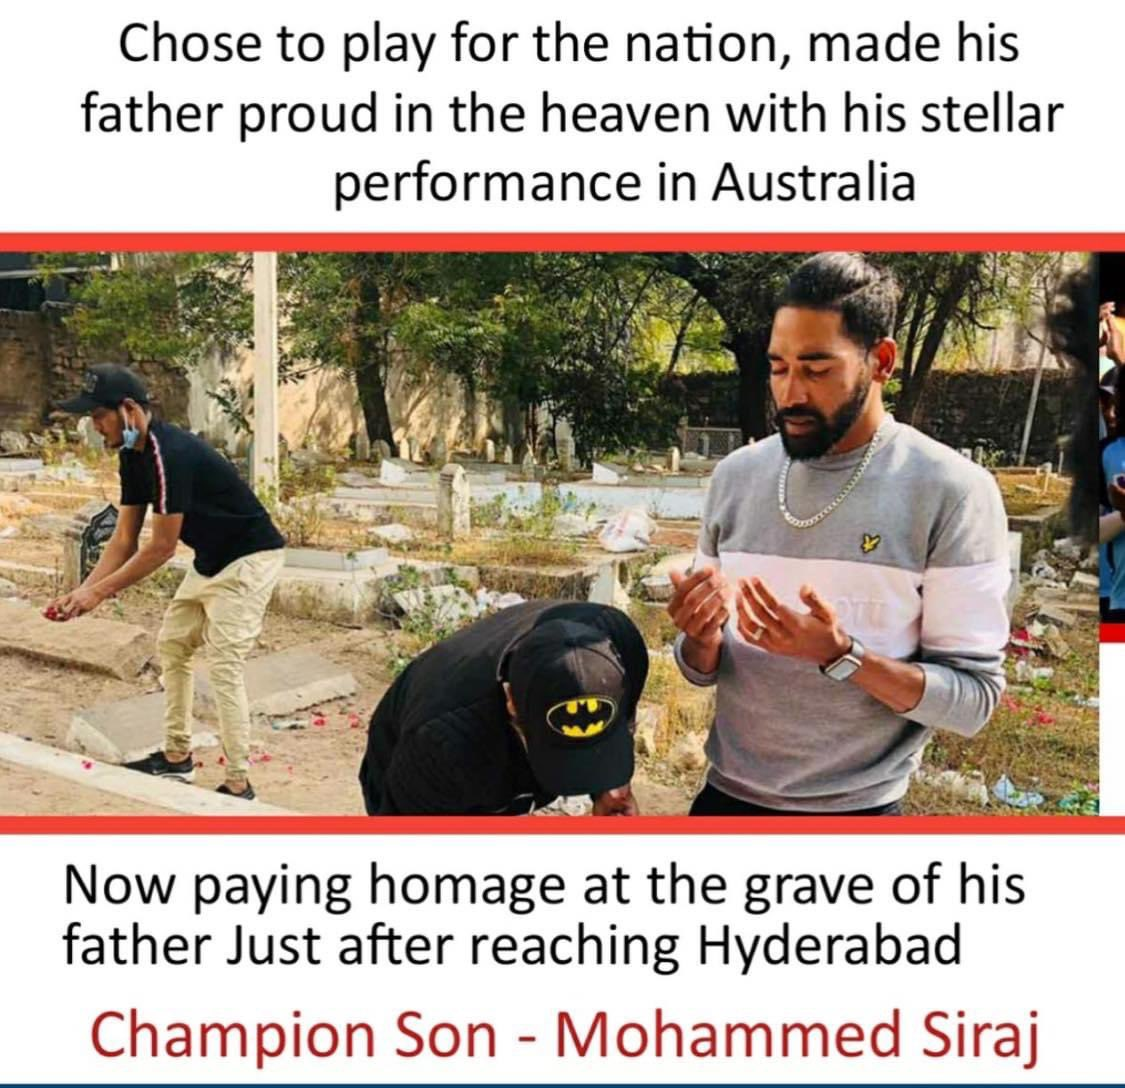 #Siraj drives straight from airport to his father's grave, brings some closure to his grief